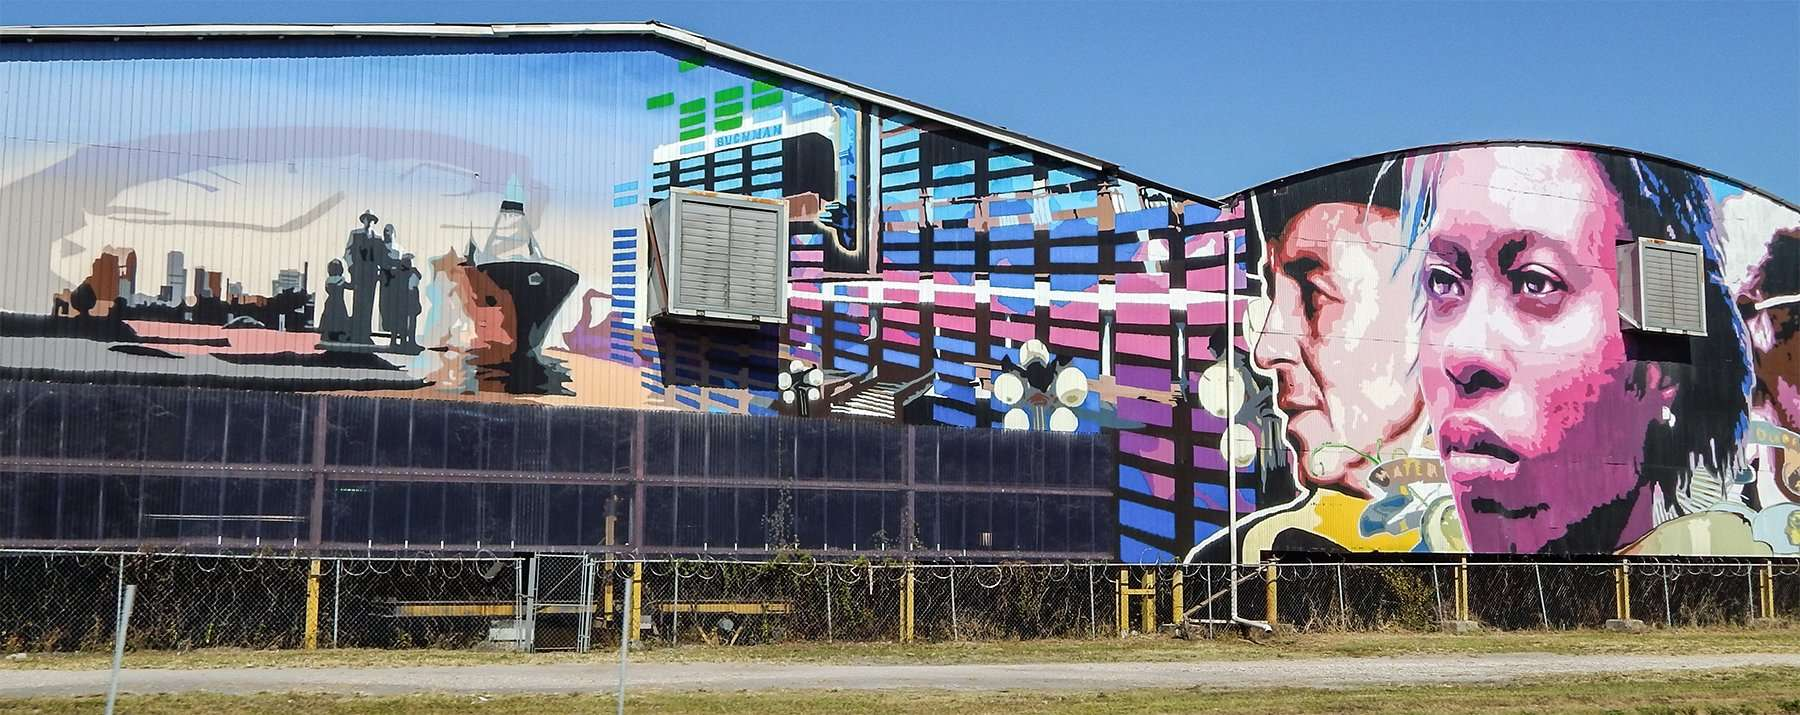 Biggest Mural In Florida Photo News 247